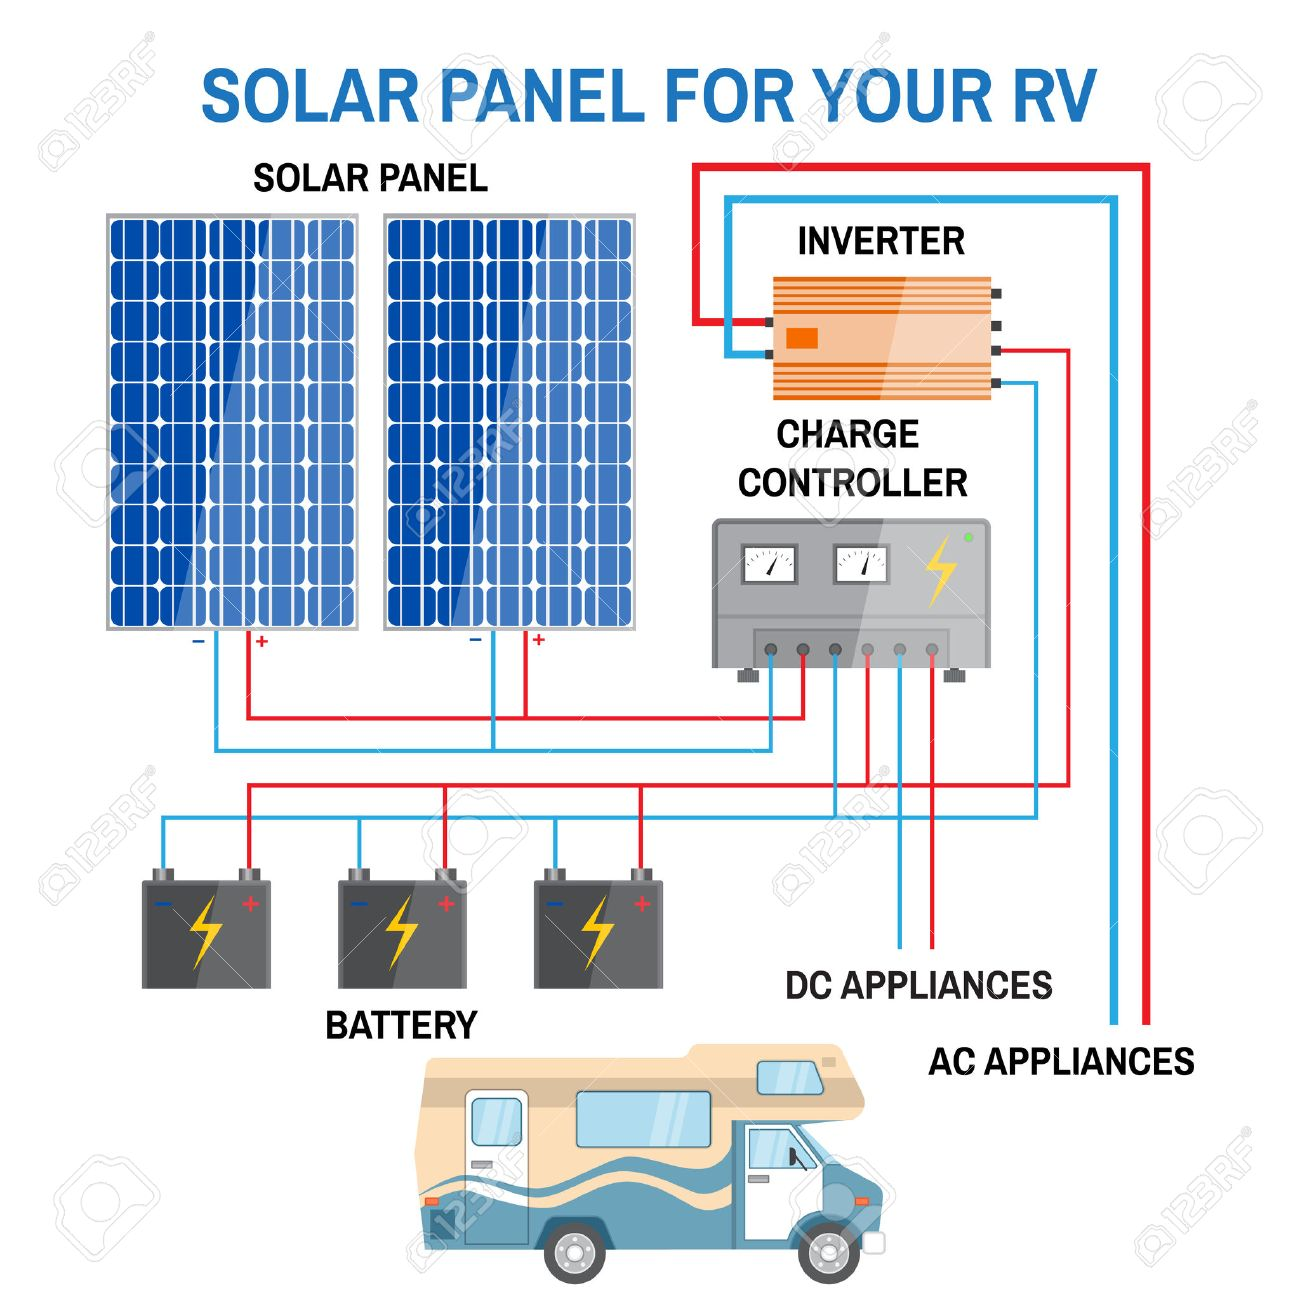 solar panel wiring diagram for rv solar image wiring diagram rv solar power system wiring auto wiring diagram on solar panel wiring diagram for